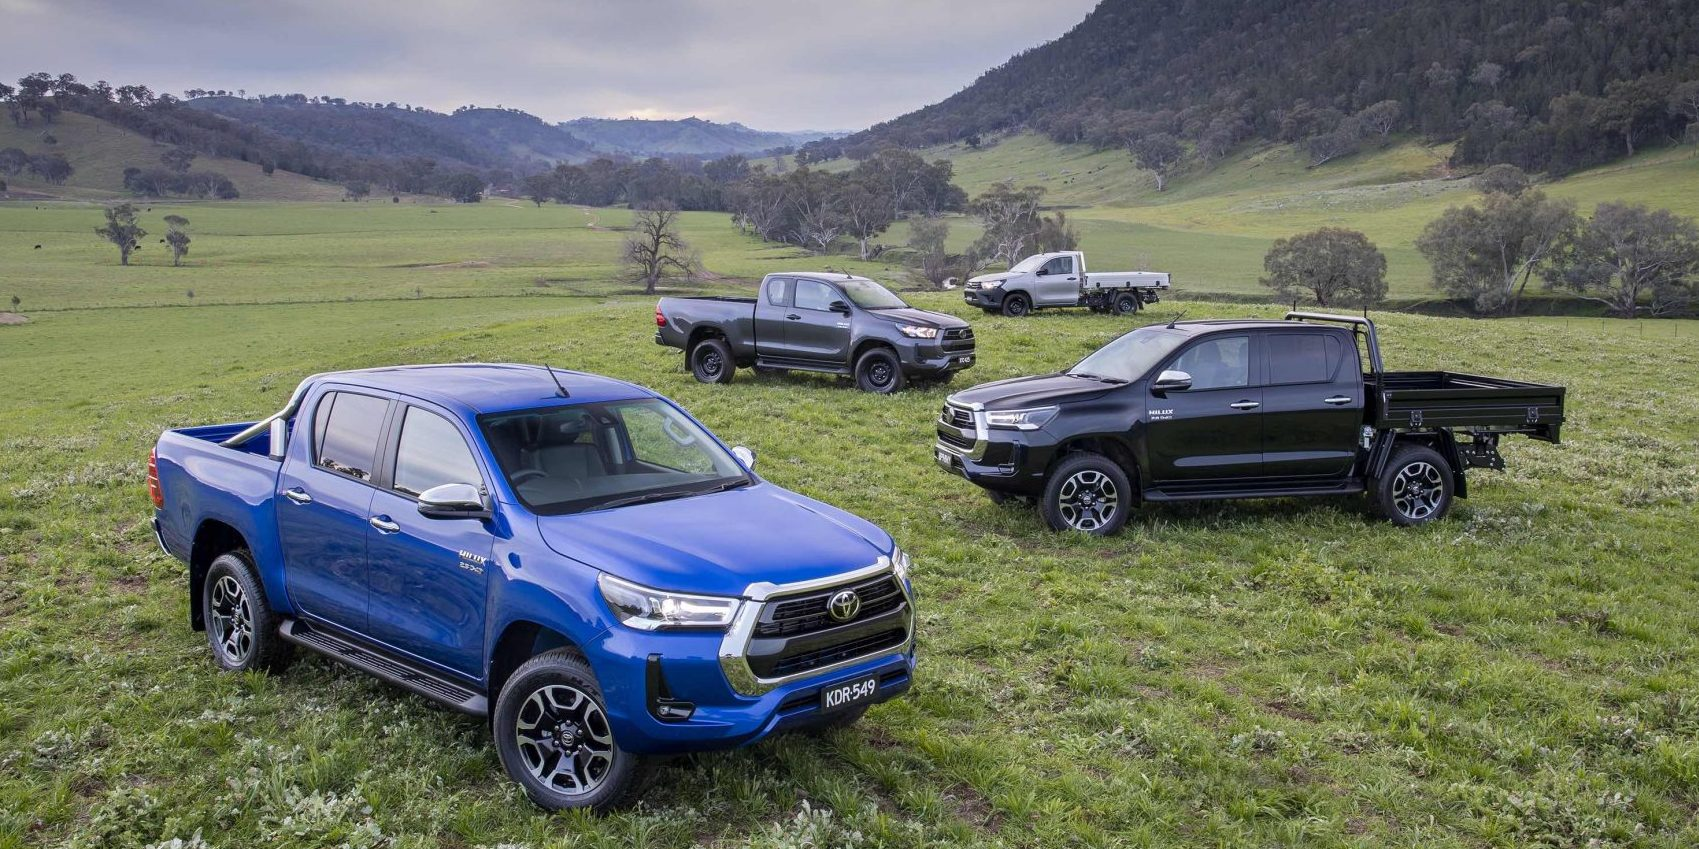 Possible brake booster failure forces Toyota Hilux / Fortuner recall